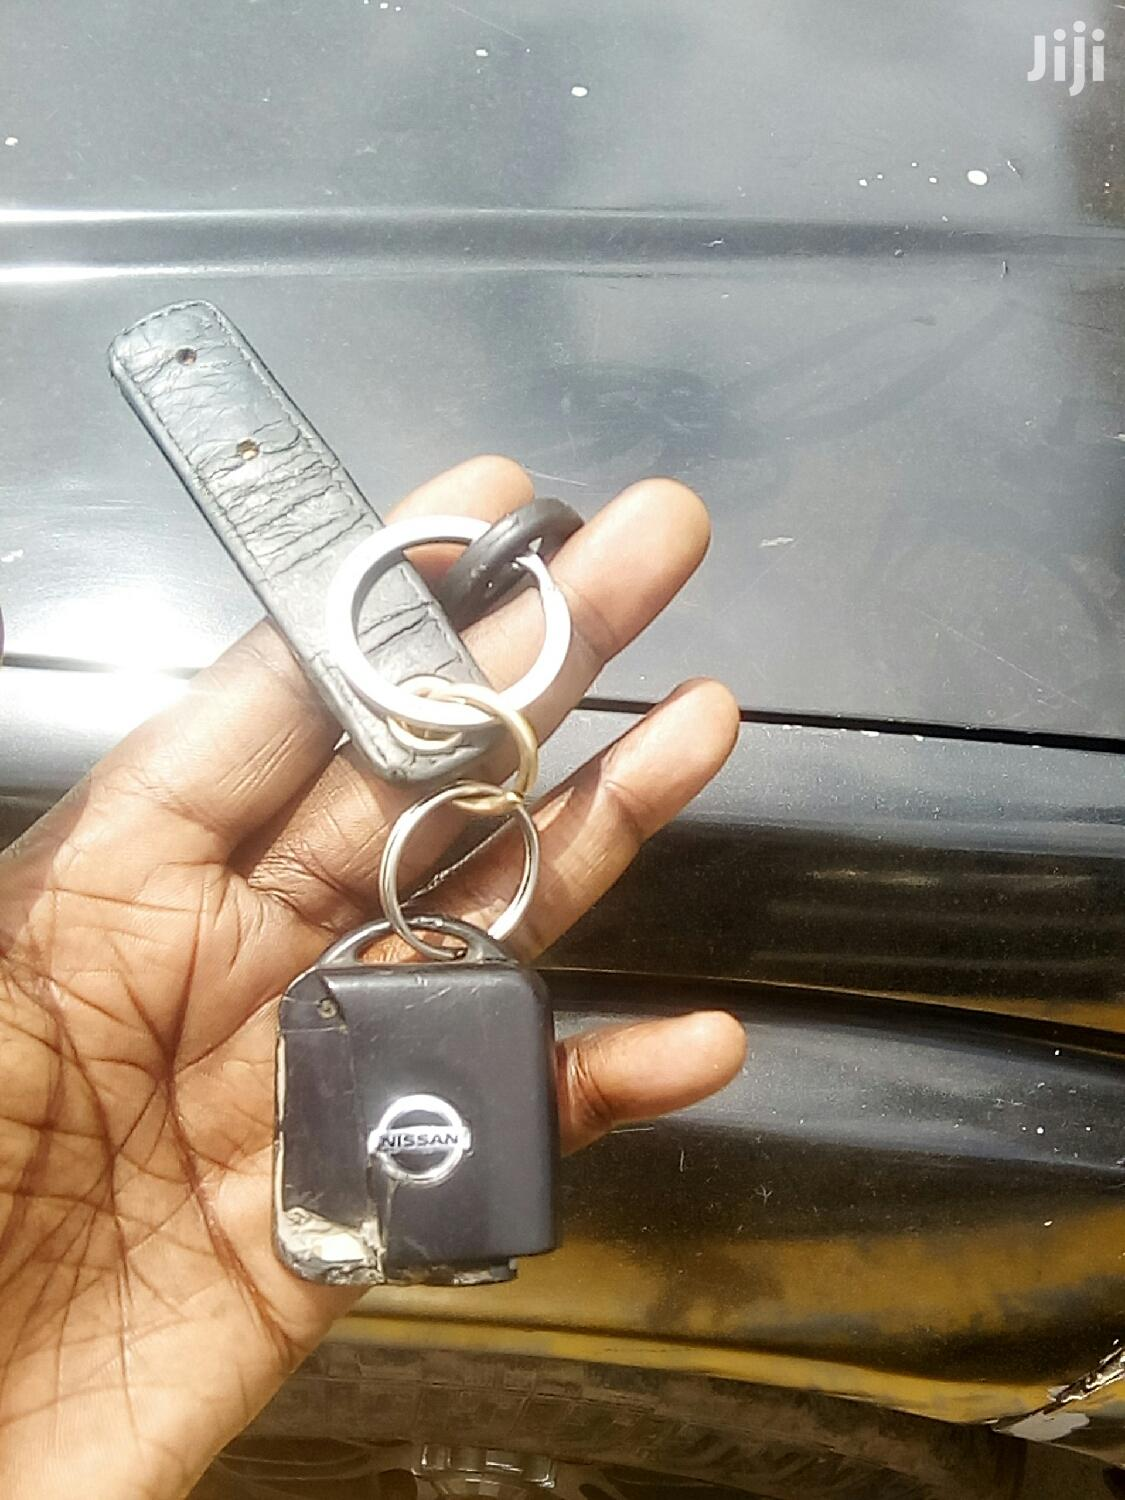 Nissan Shell/Cover Replacement.. | Automotive Services for sale in Nairobi Central, Nairobi, Kenya